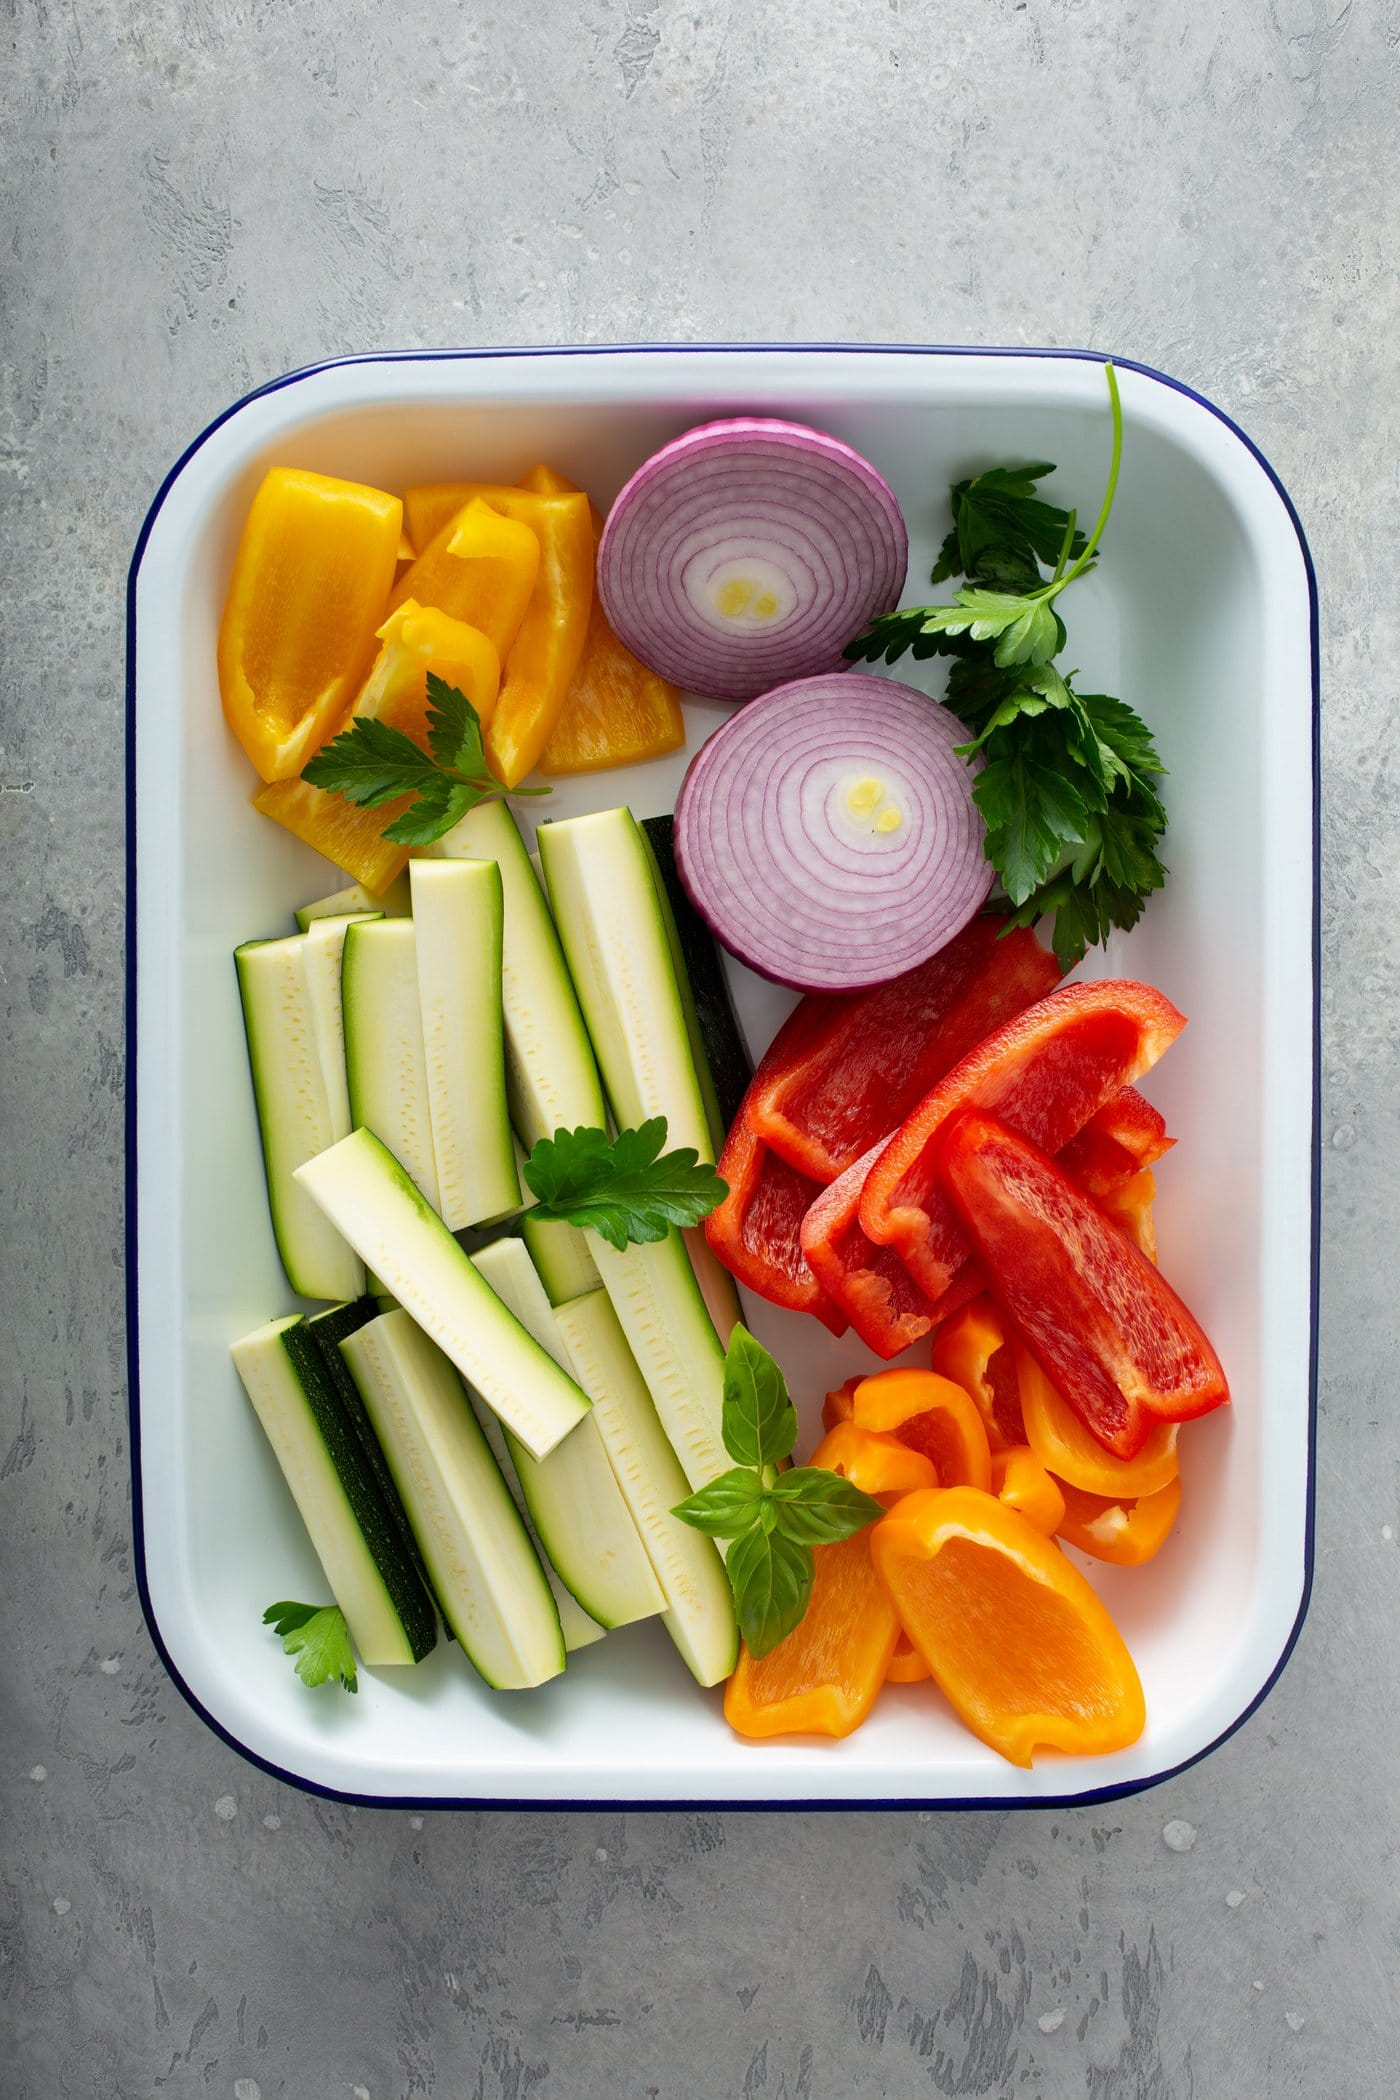 A plate with fresh zucchini wedges, sliced red onion, slices of red and yellow bell peppers, and parsley leaves.